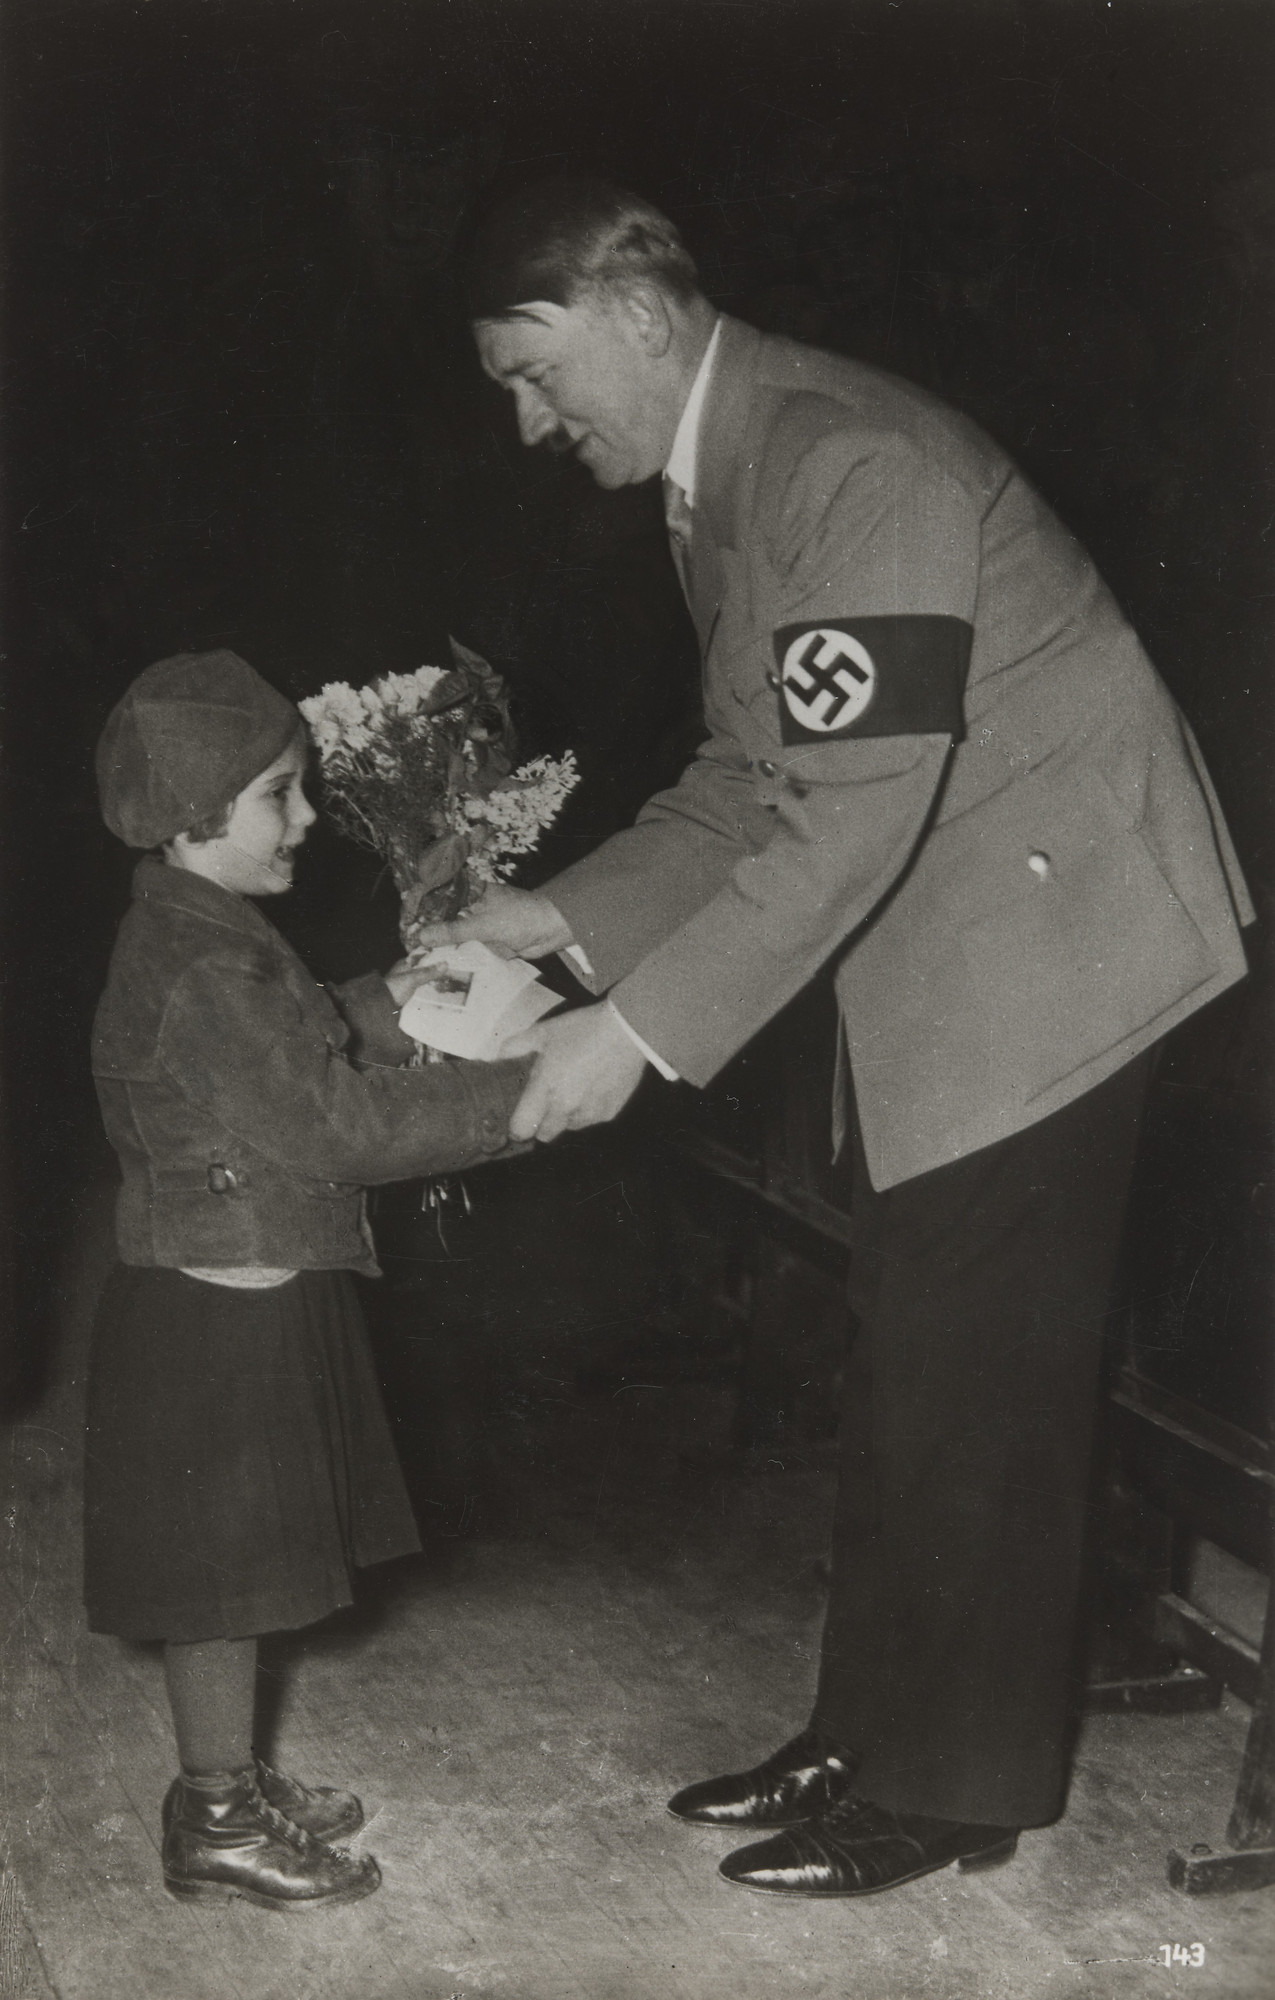 Berlin Foto Senneke. Girl Giving Hitler Flowers. 1933-45 | MoMA